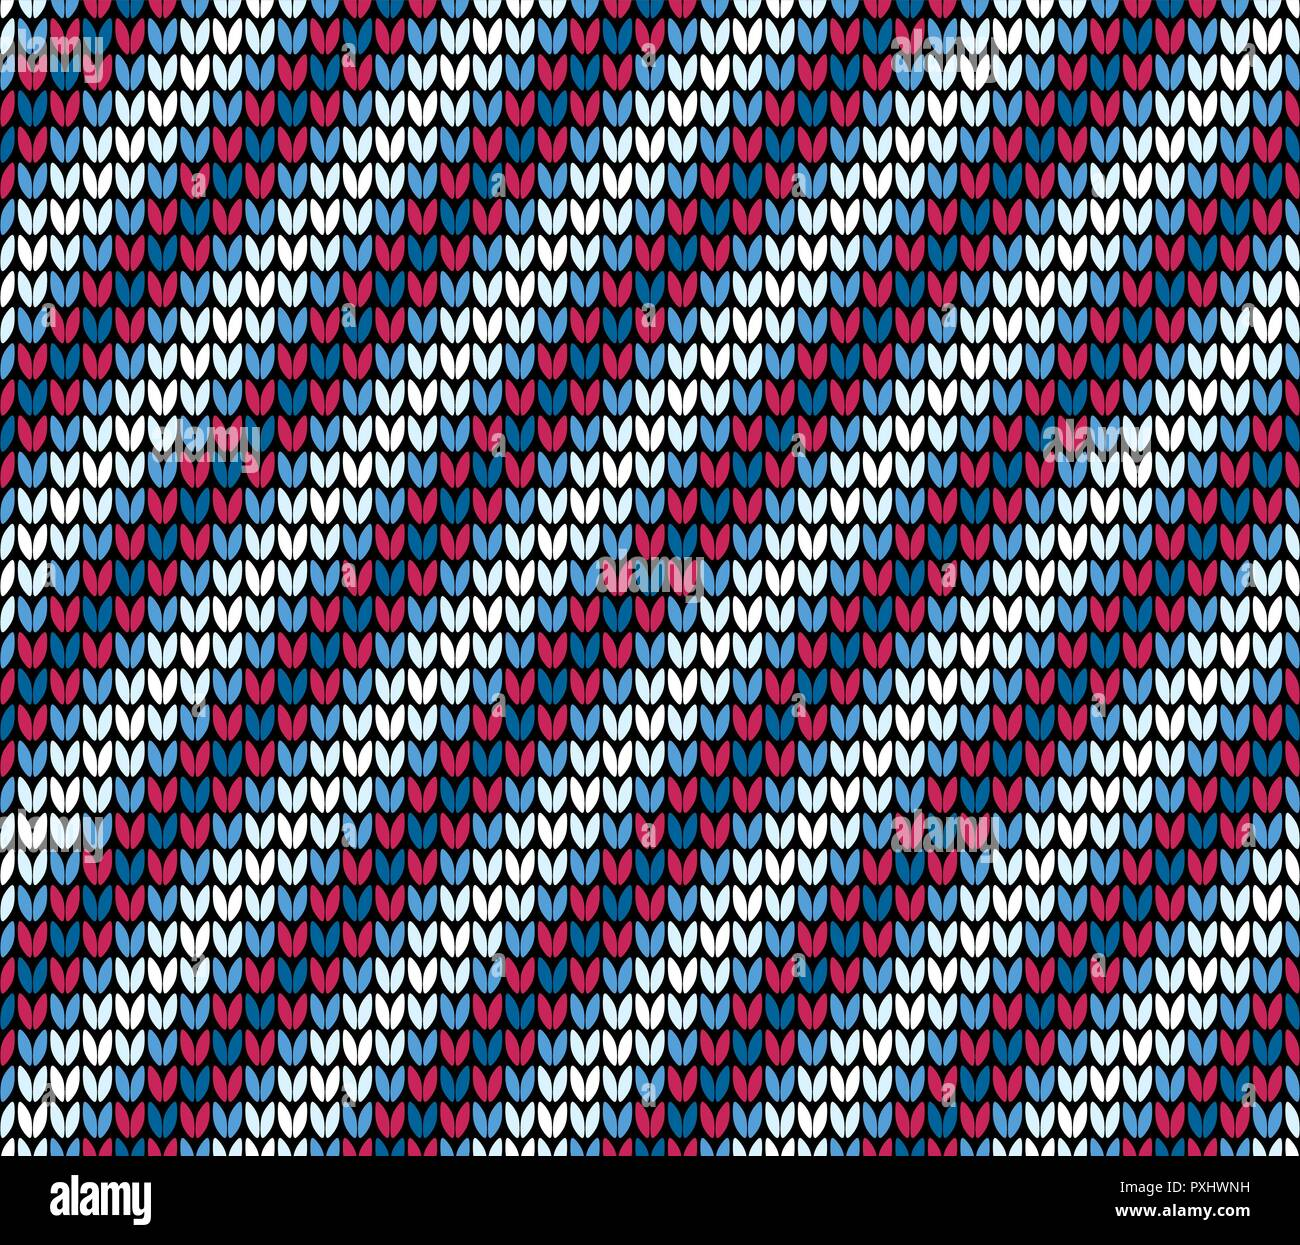 Abstract red blue and white diagonal seamless knitting pattern background - Stock Vector